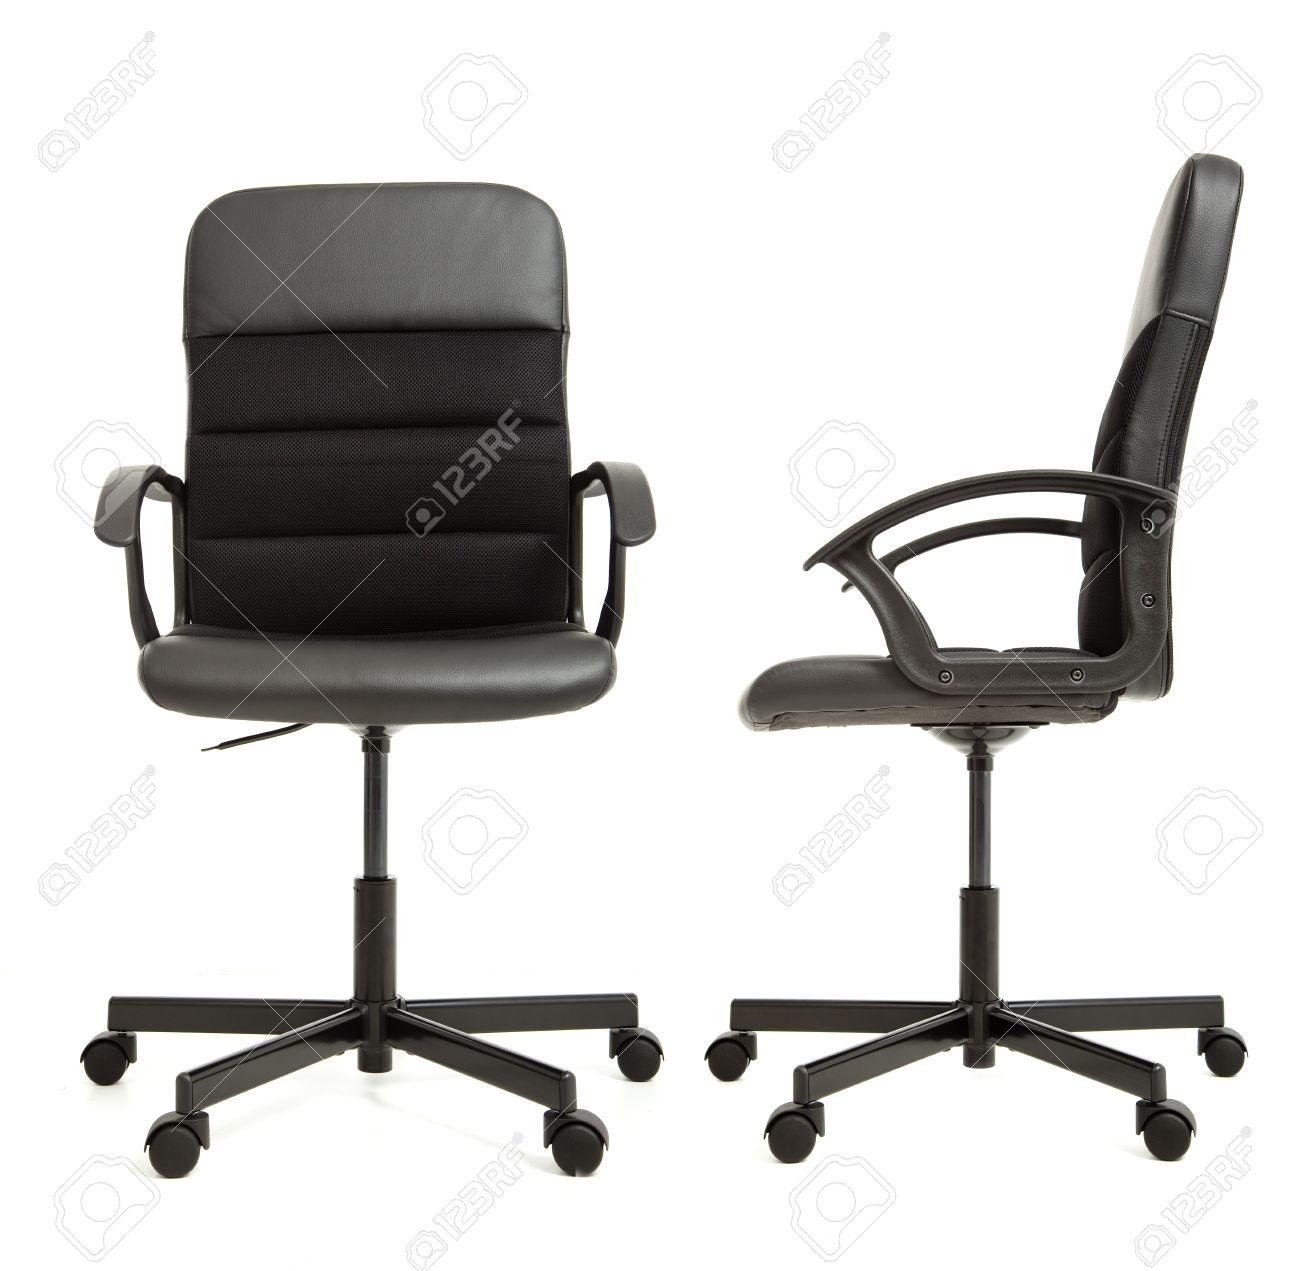 Office Chair On The White Background Front And Side View Stock Photo ... for Office Chair Front View  67qdu